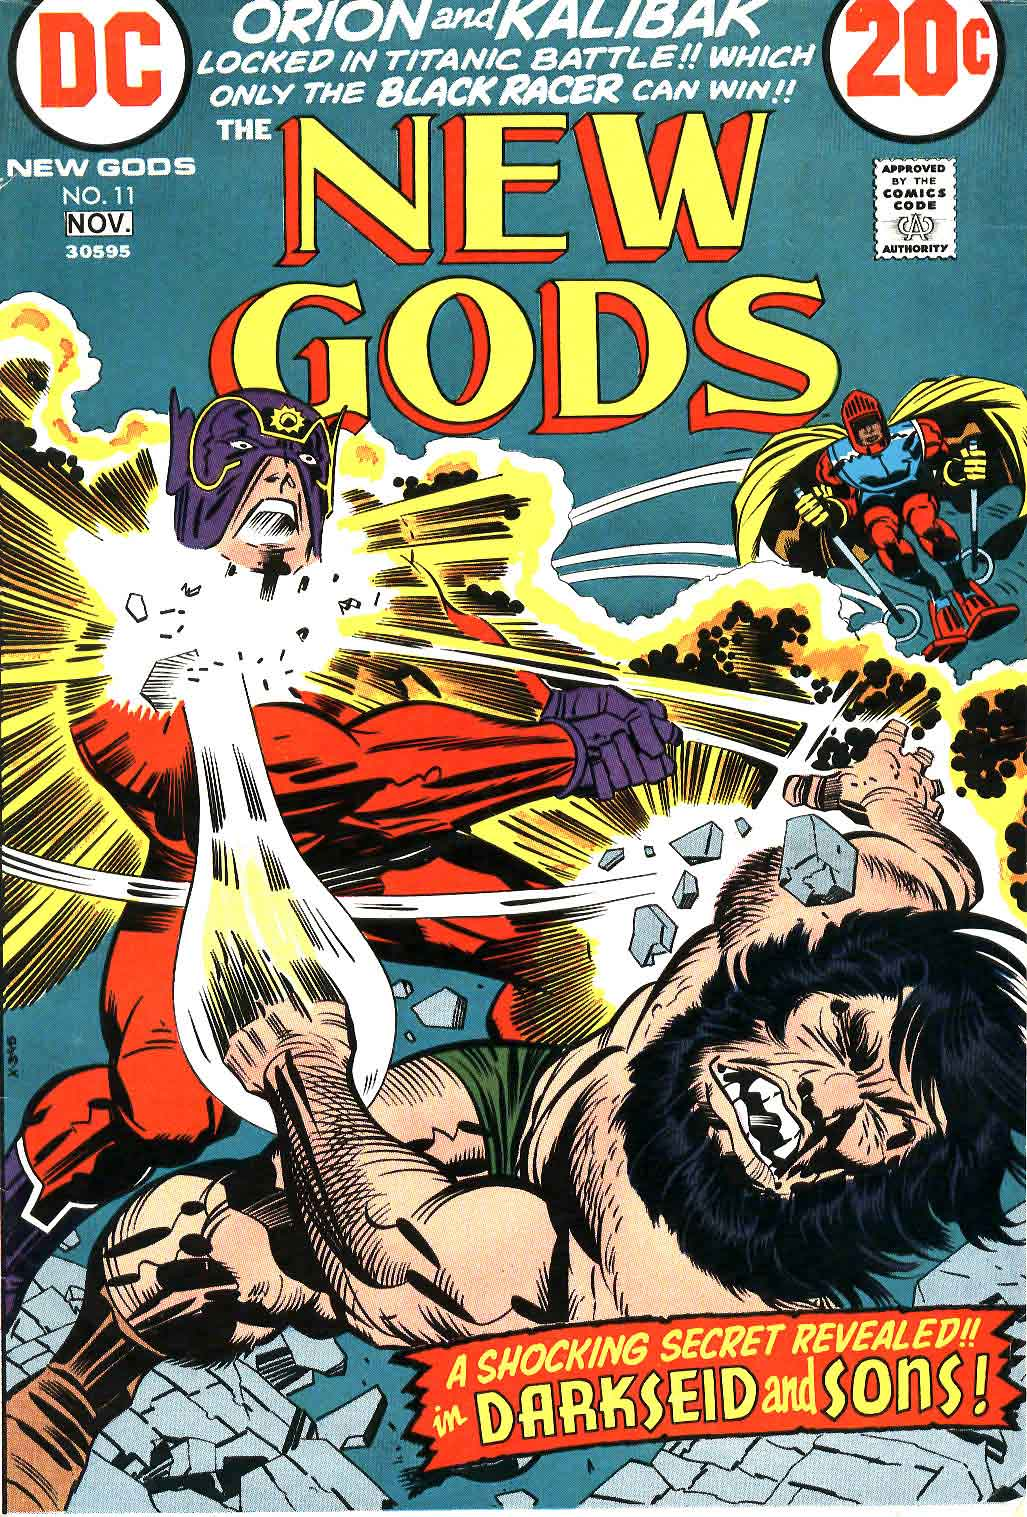 New Gods v1 #11 dc bronze age comic book cover art by Jack Kirby